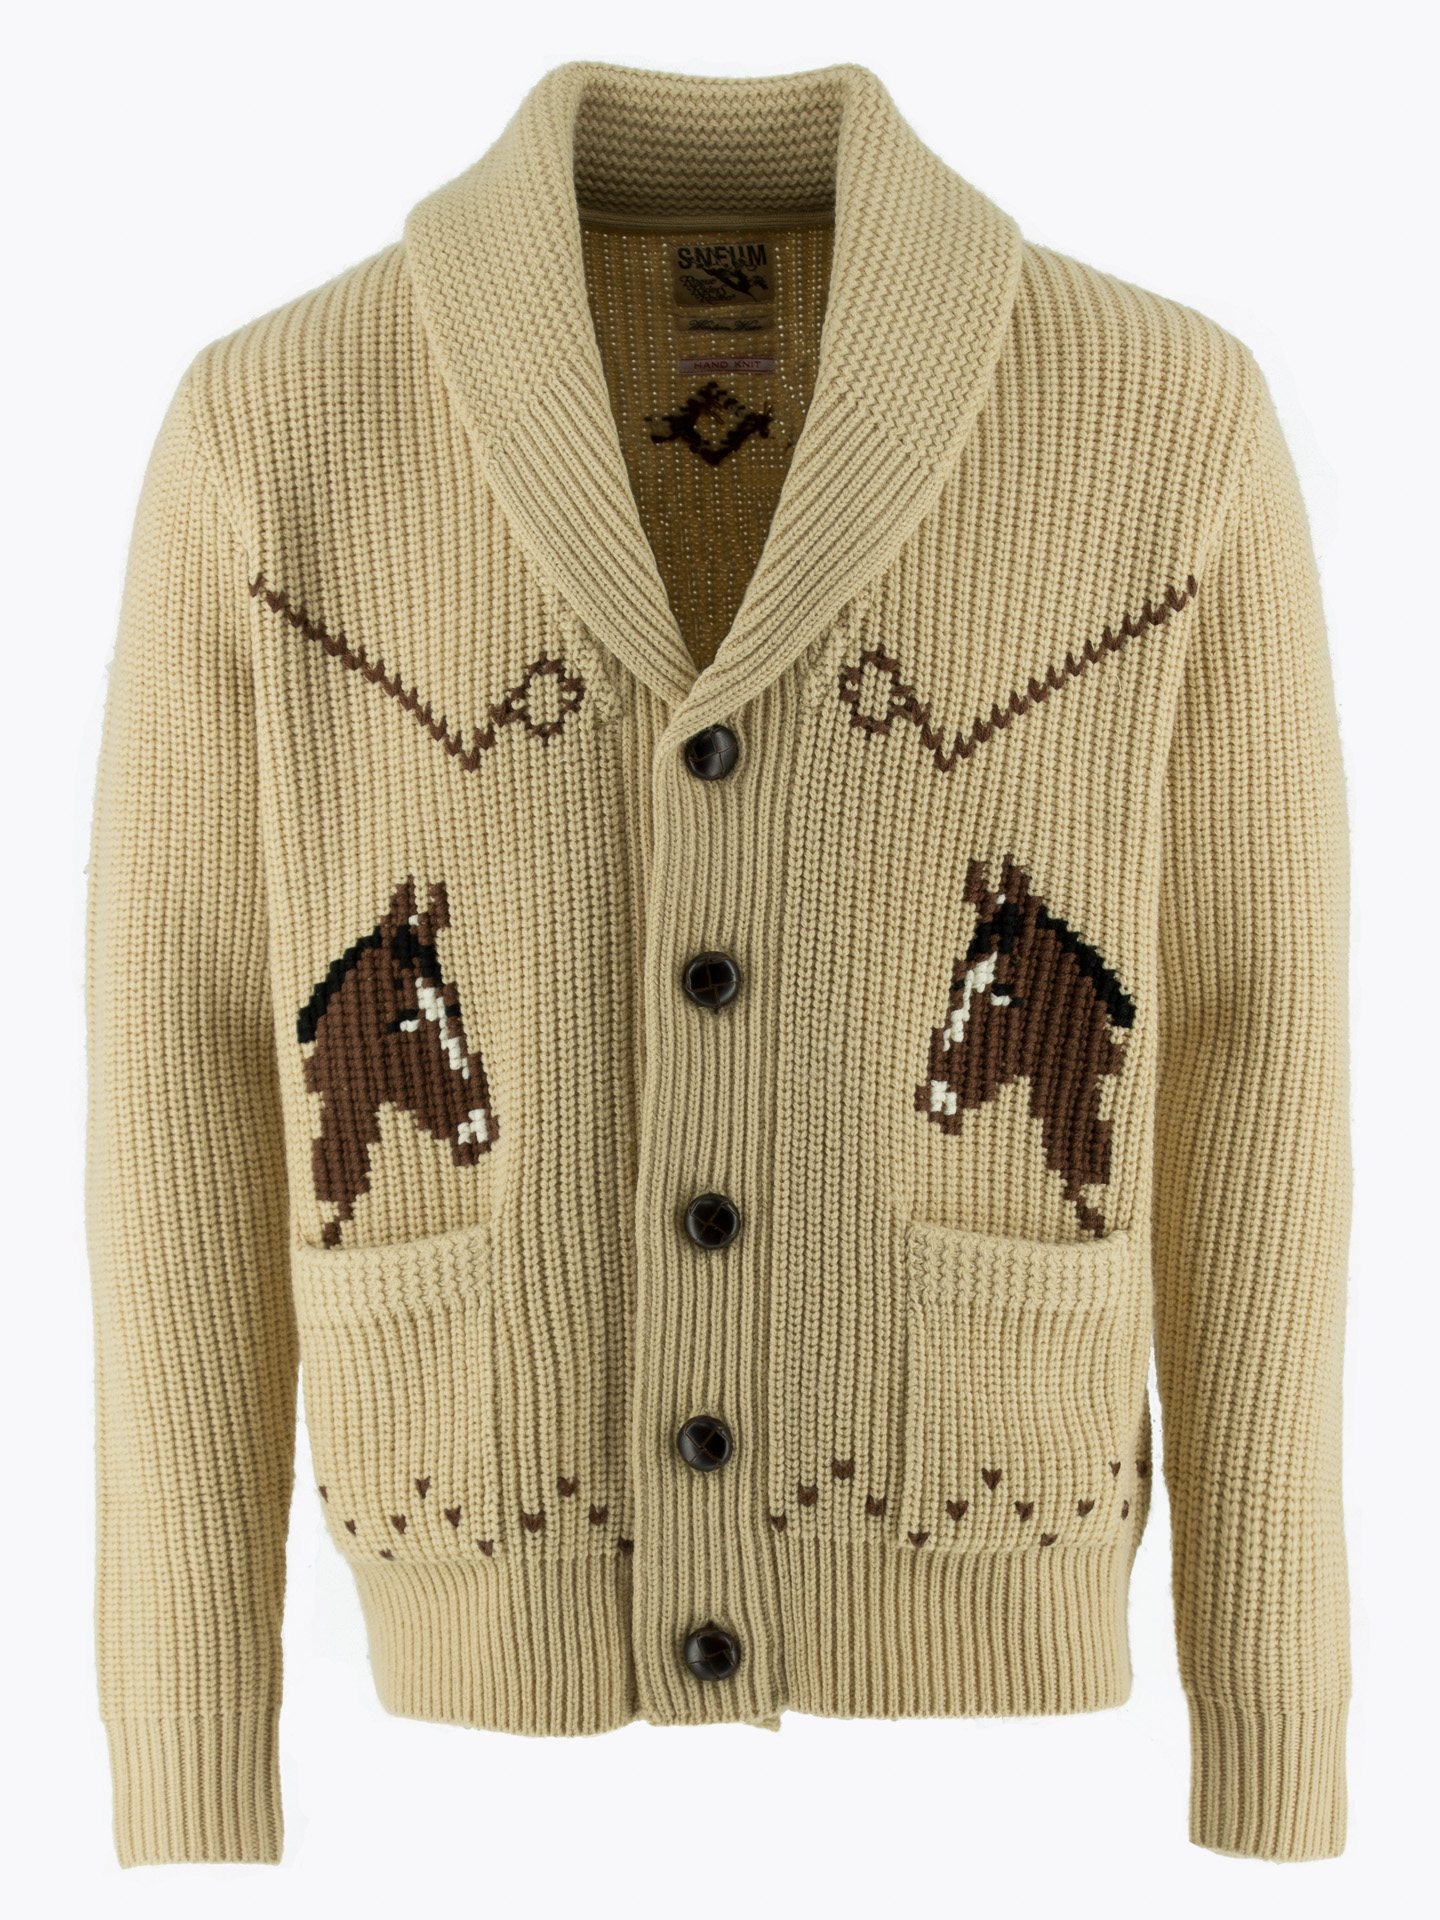 Cowichan hand knitted cardigan sweater